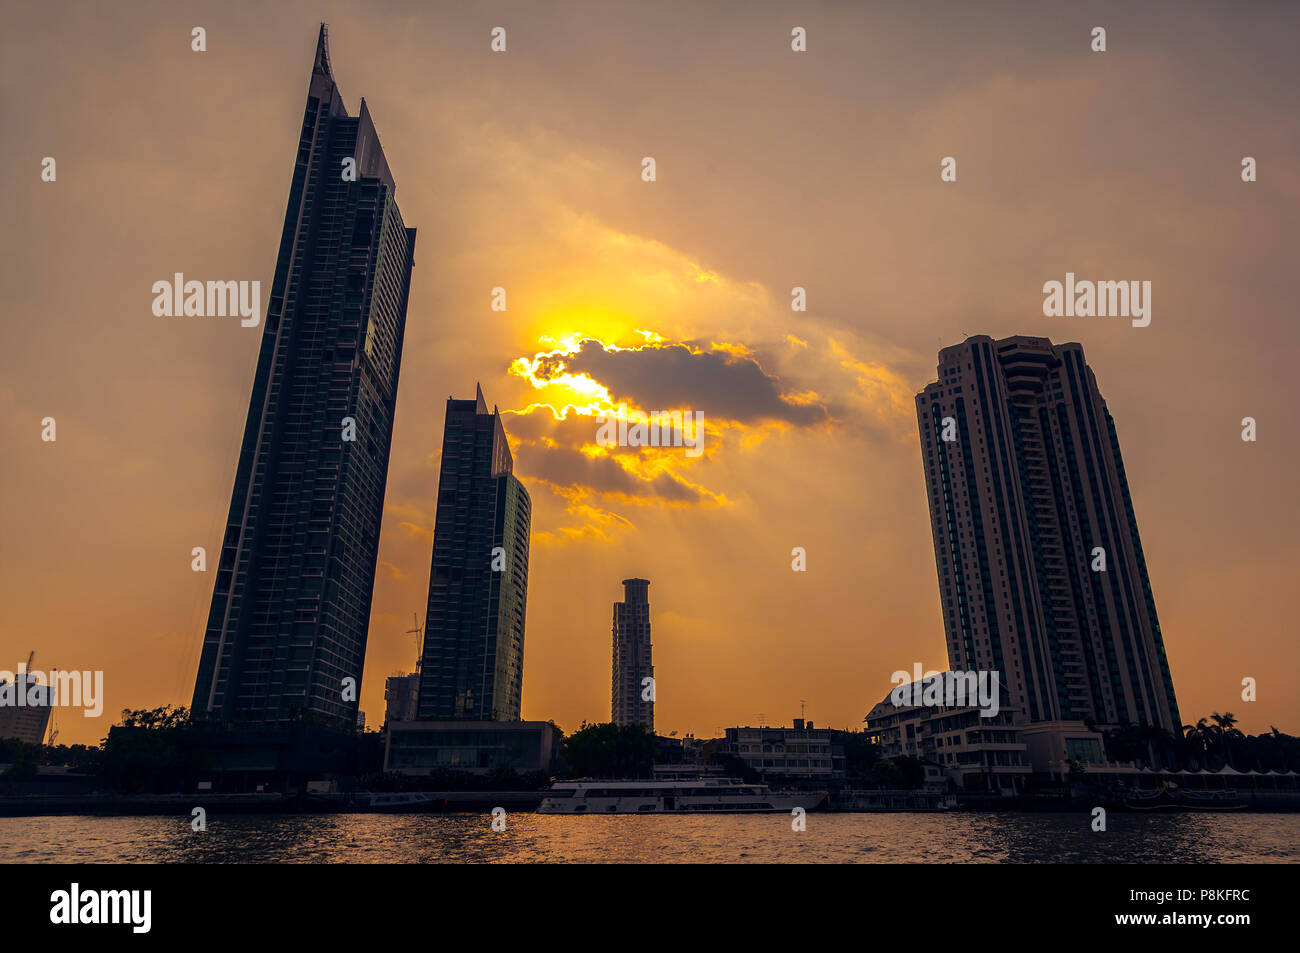 Skyscrapers of Bangkok on sunset background. - Stock Image